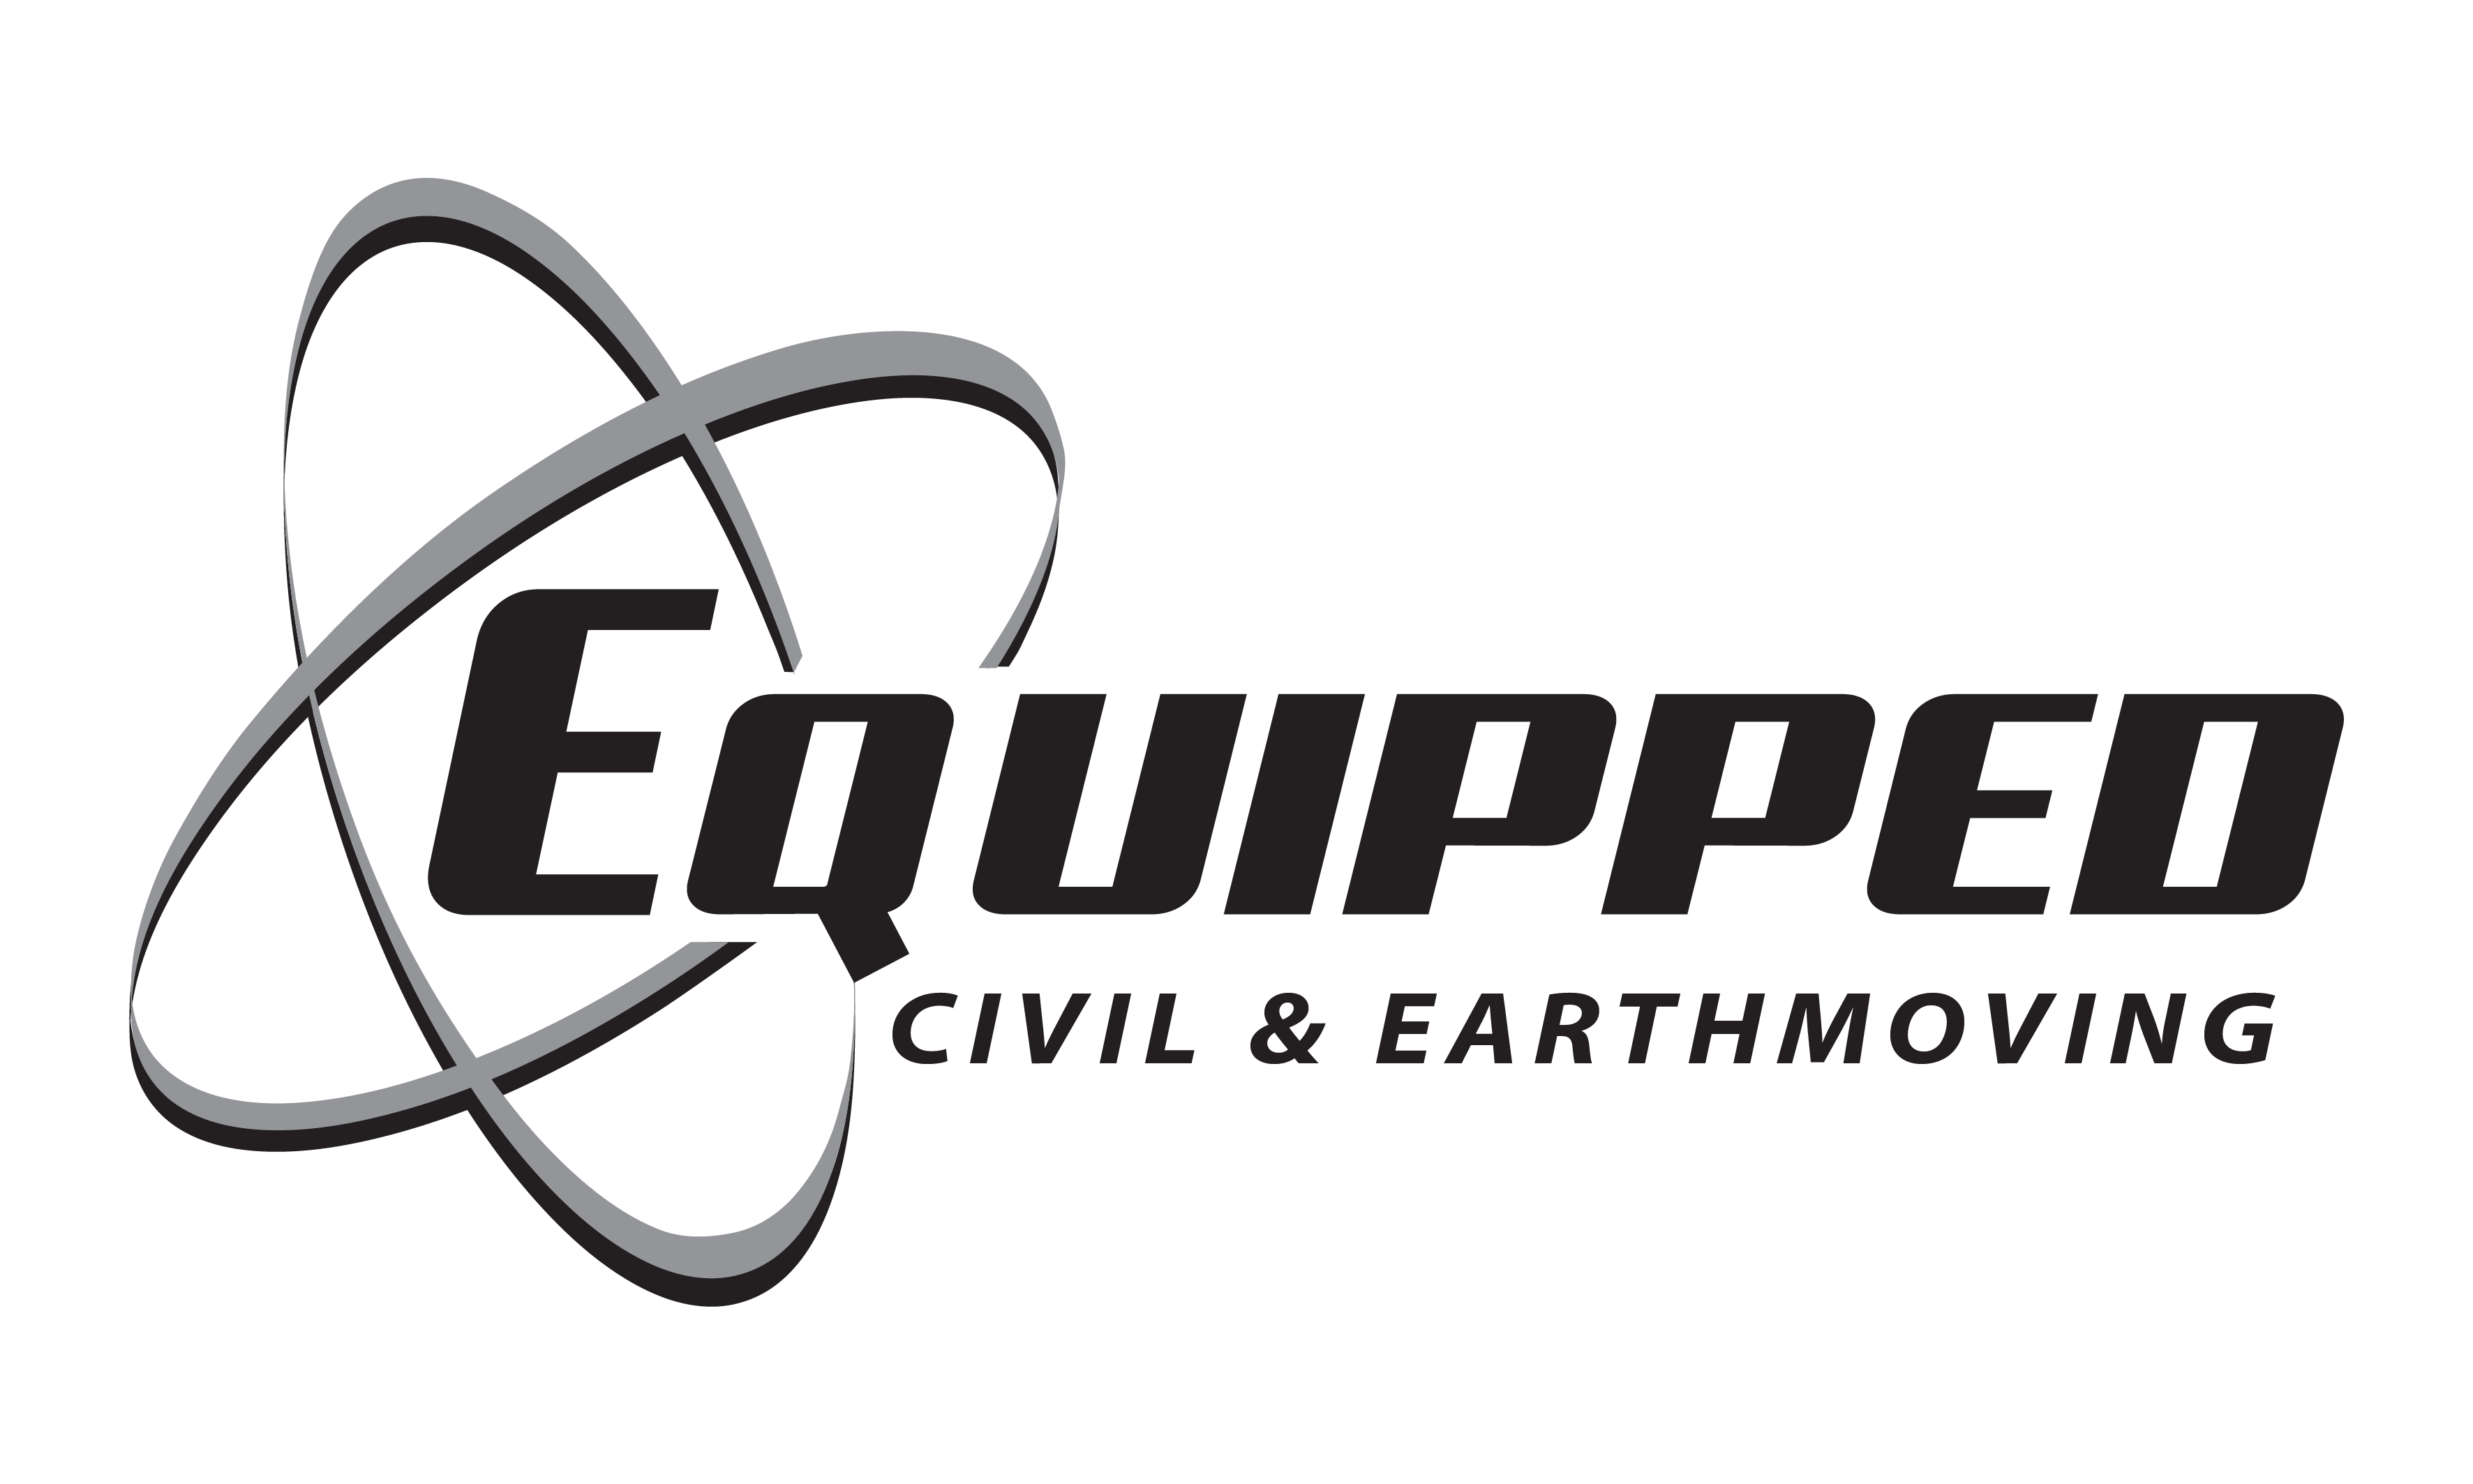 Equipped Civil and Earthworks